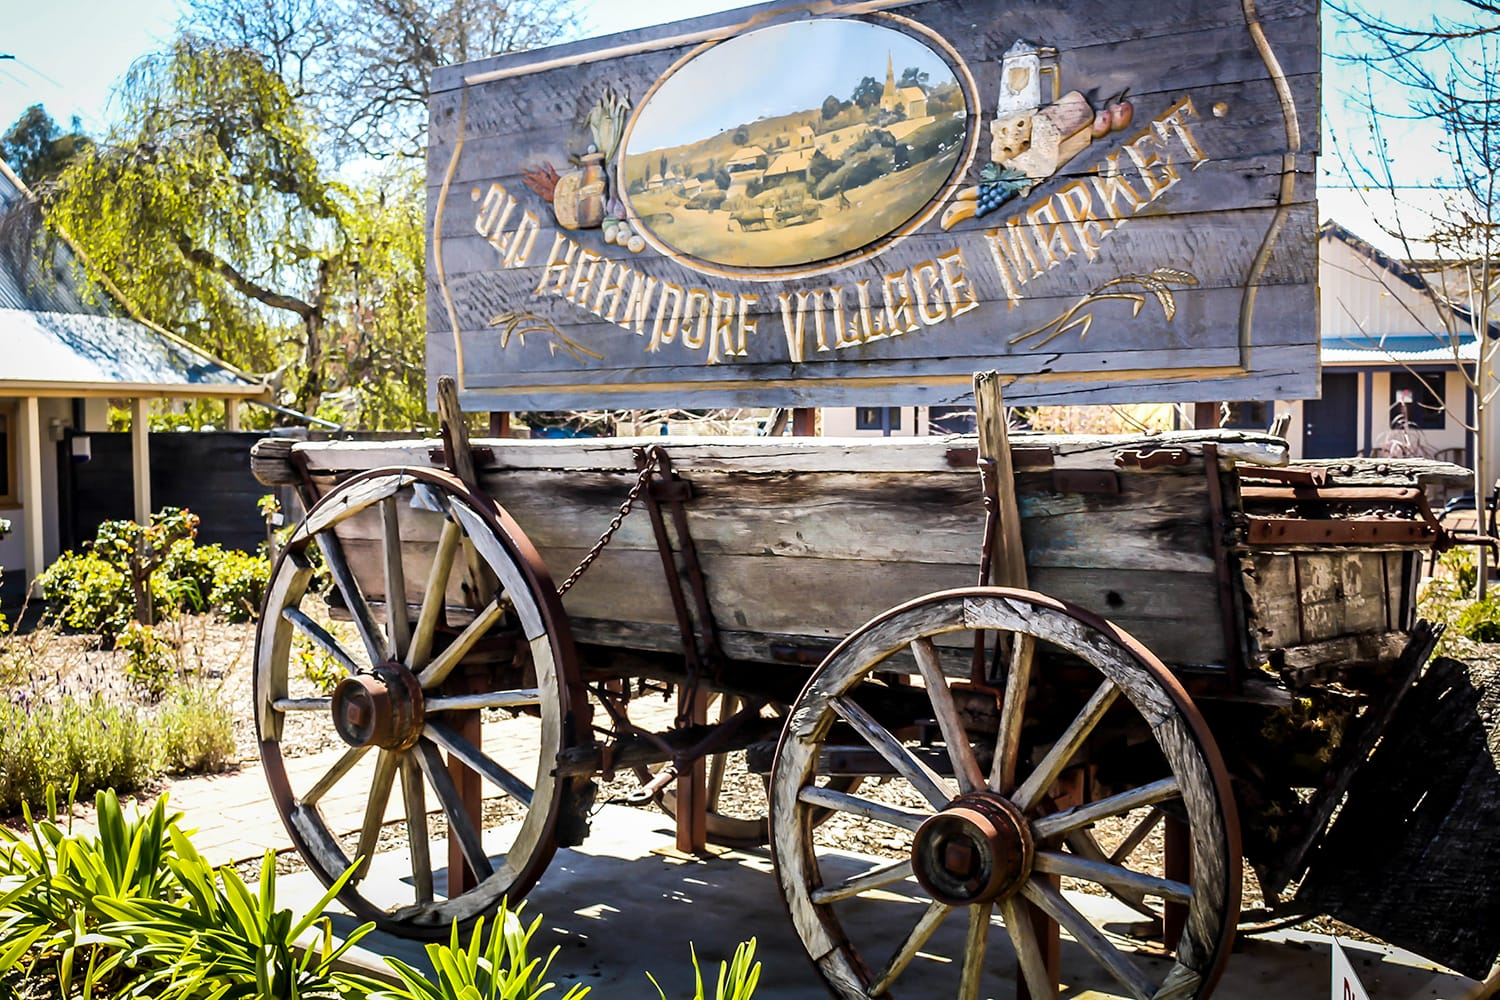 Old wooden cart in Hahndorf, Adelaide Hills, South Australia